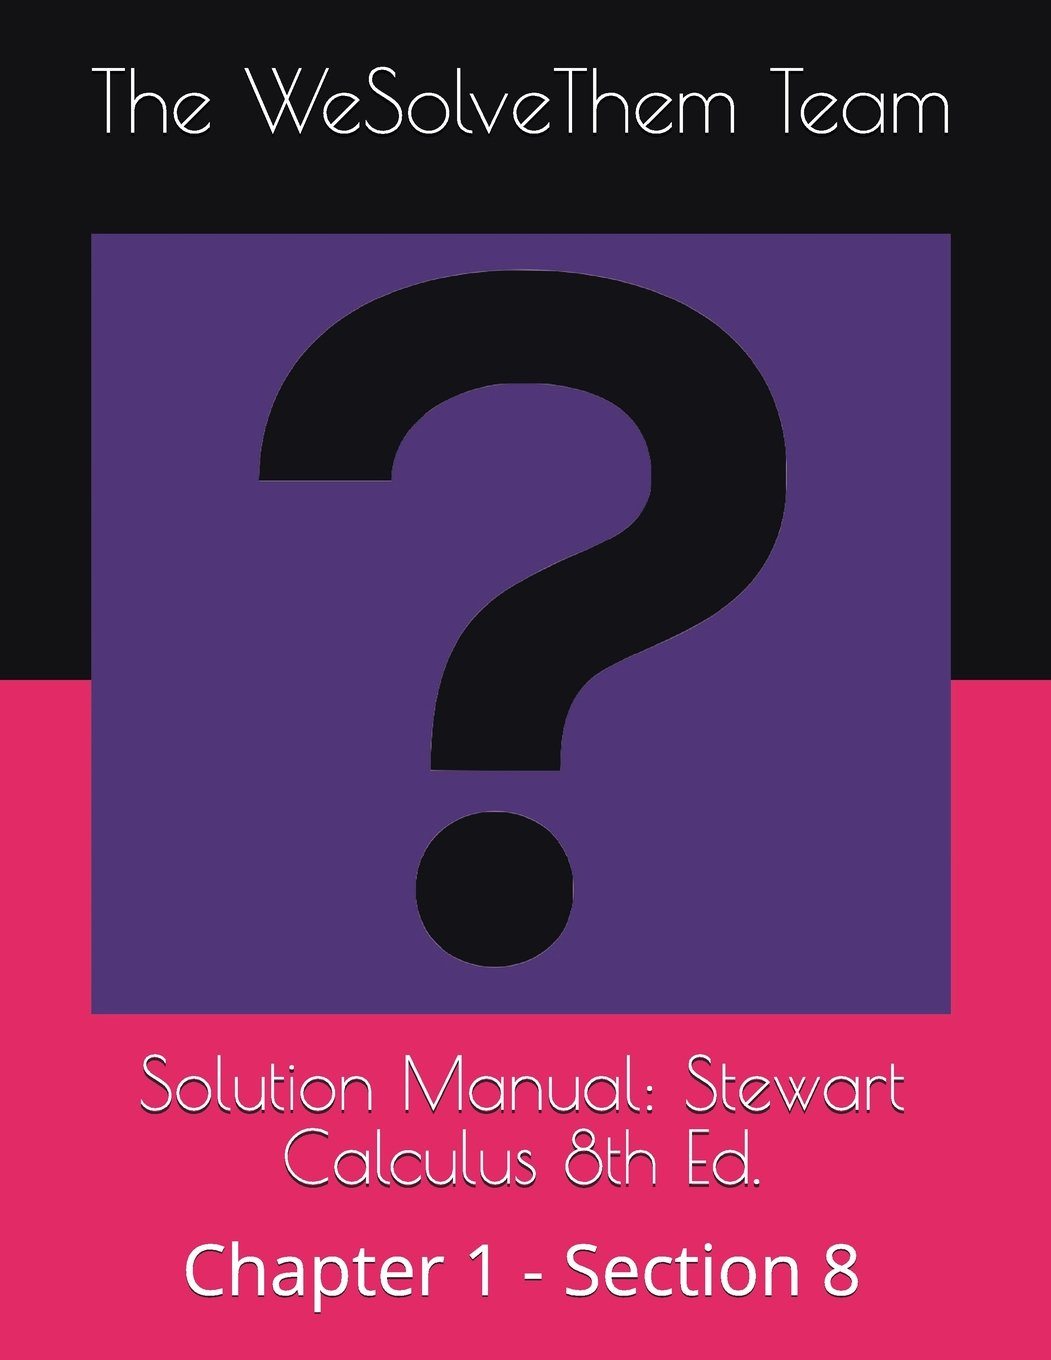 Solution Manual: Stewart Calculus 8th Ed.: Chapter 1 - Section 8 Paperback  – Import, 20 Jul 2018. by The Wesolvethem Team ...